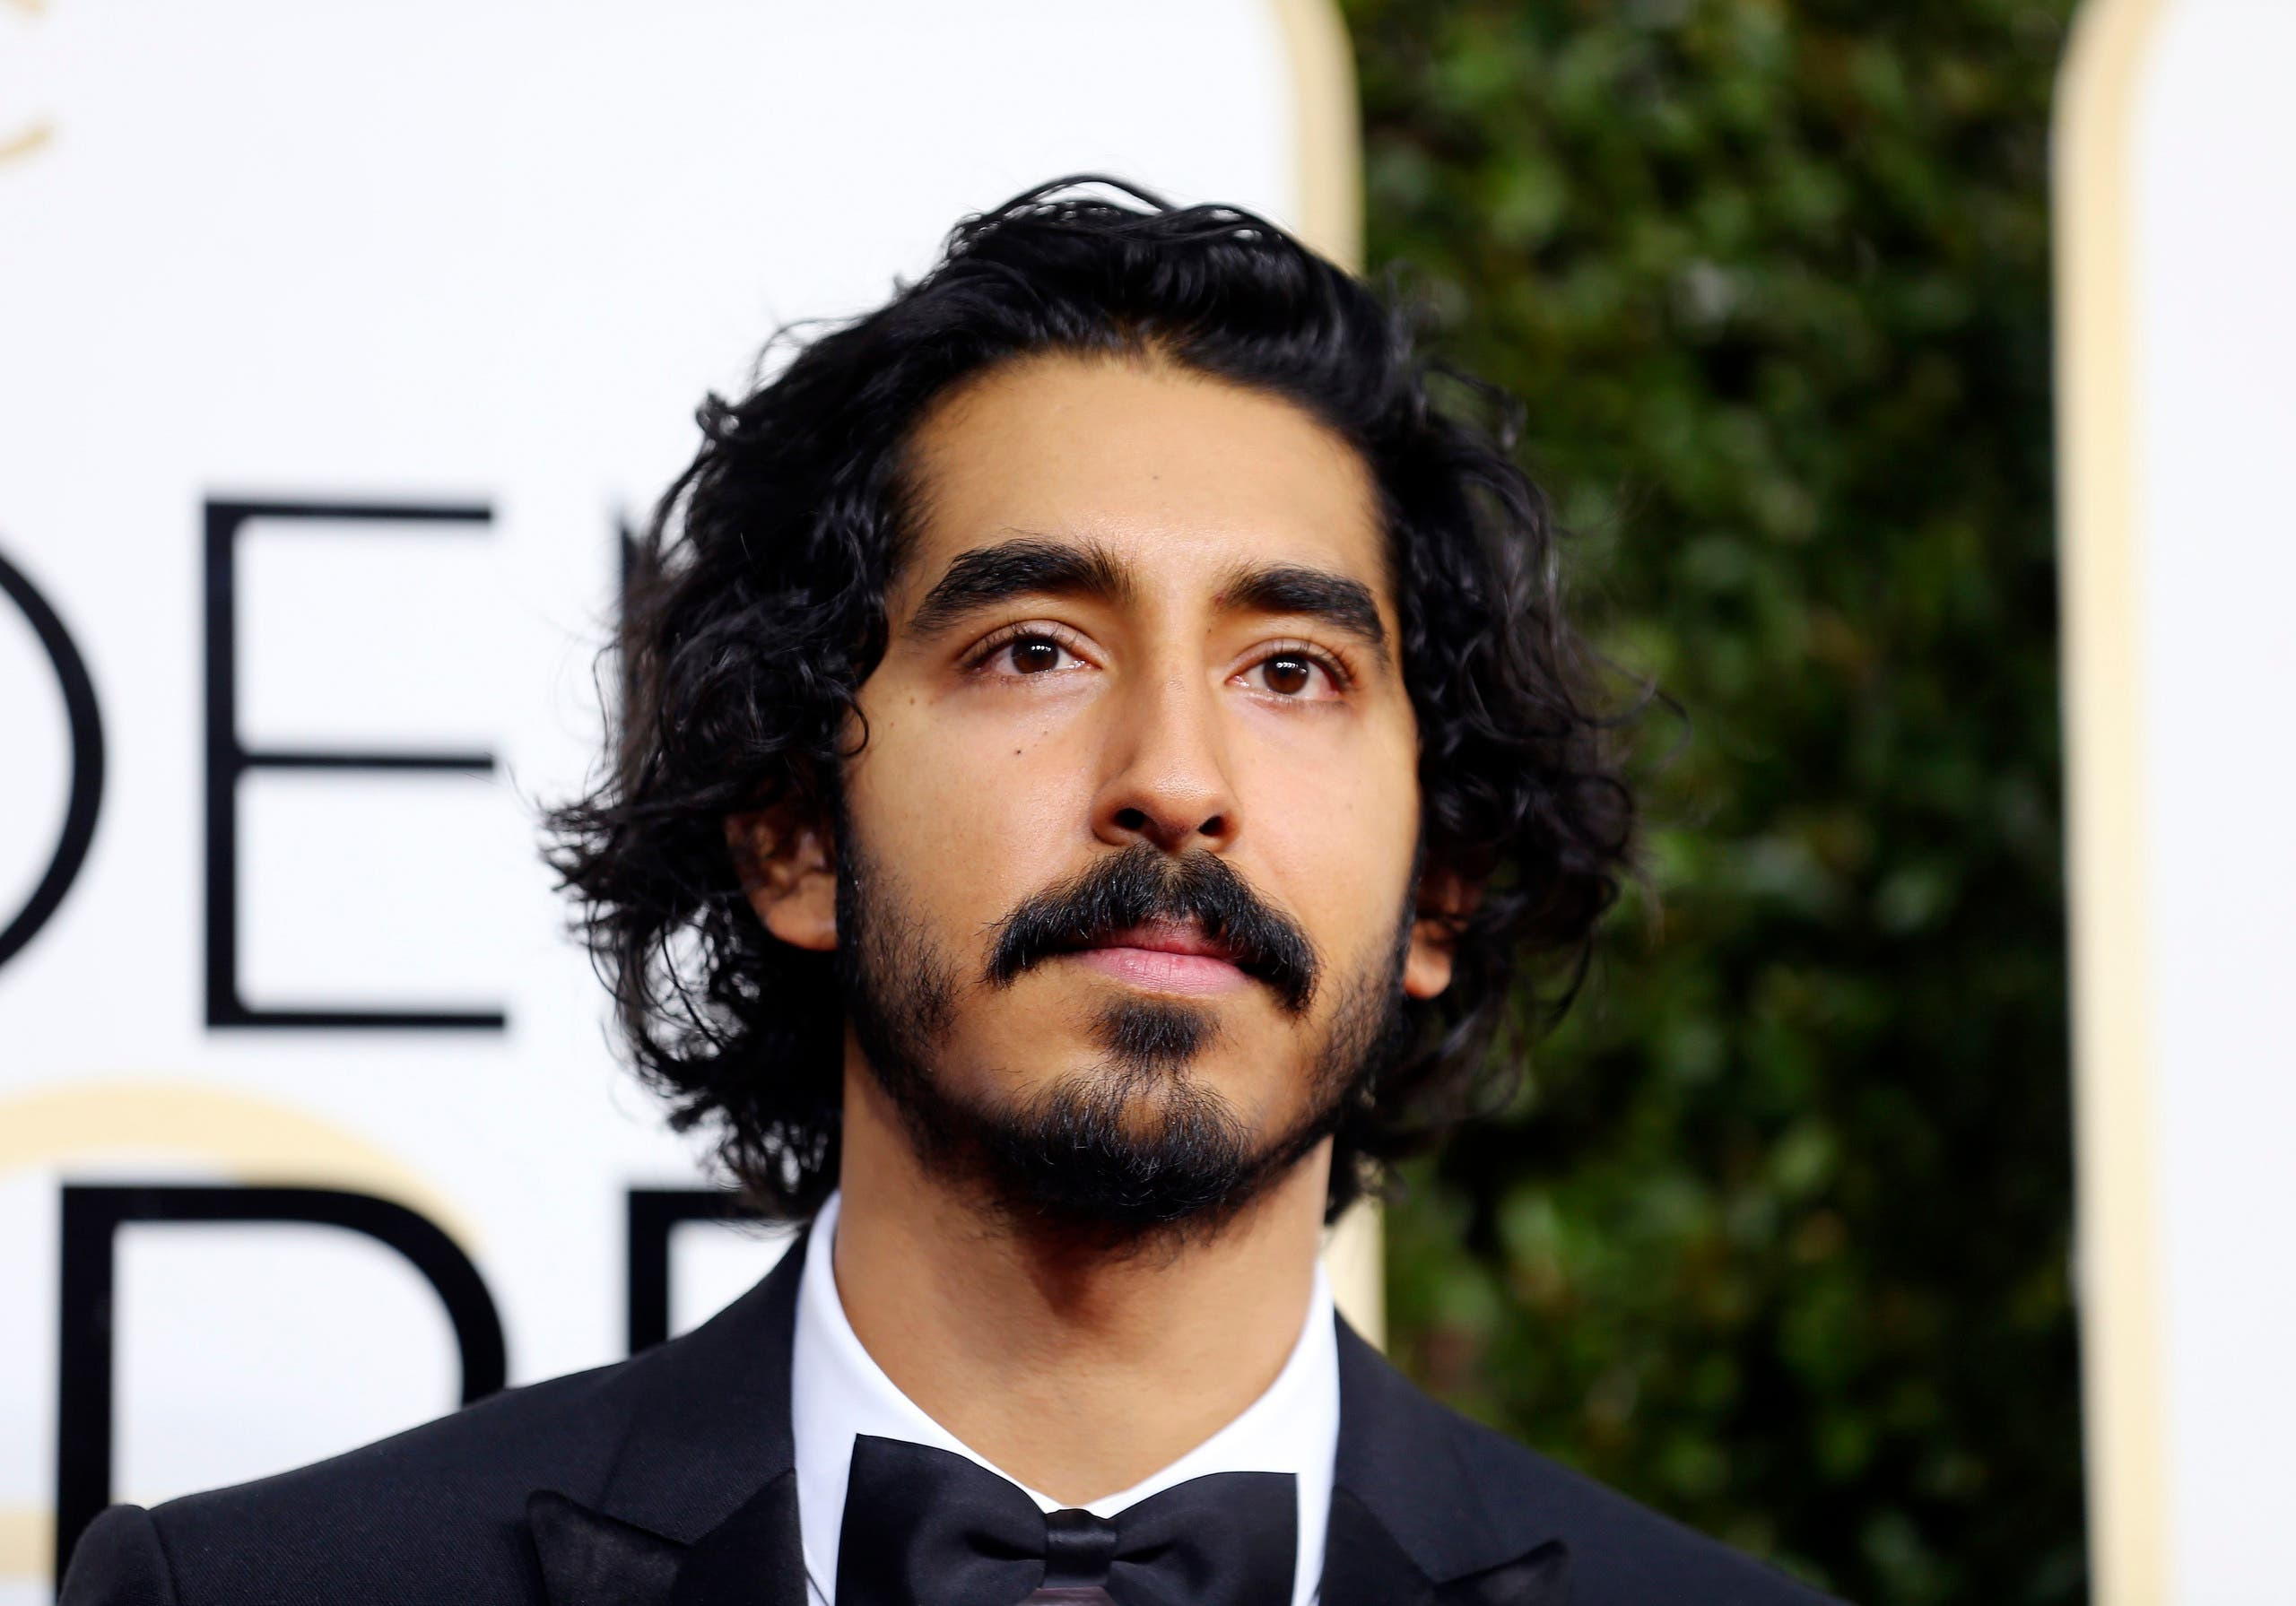 Actor Dev Patel arrives at the 74th Annual Golden Globe Awards in Beverly Hills, California, U.S., January 8, 2017. REUTERS